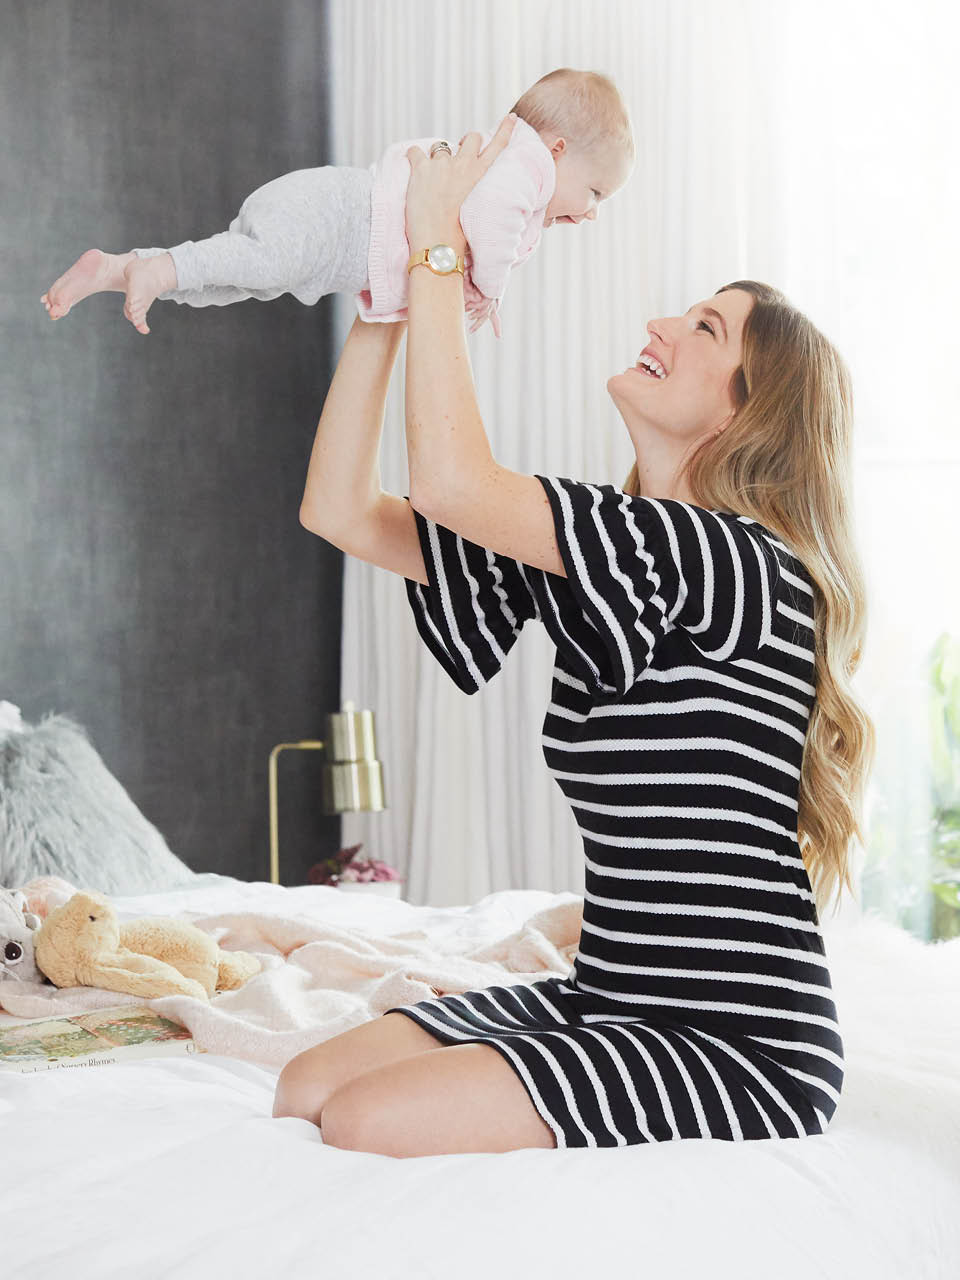 Mom in a striped dress sitting on bed holding a baby above her head